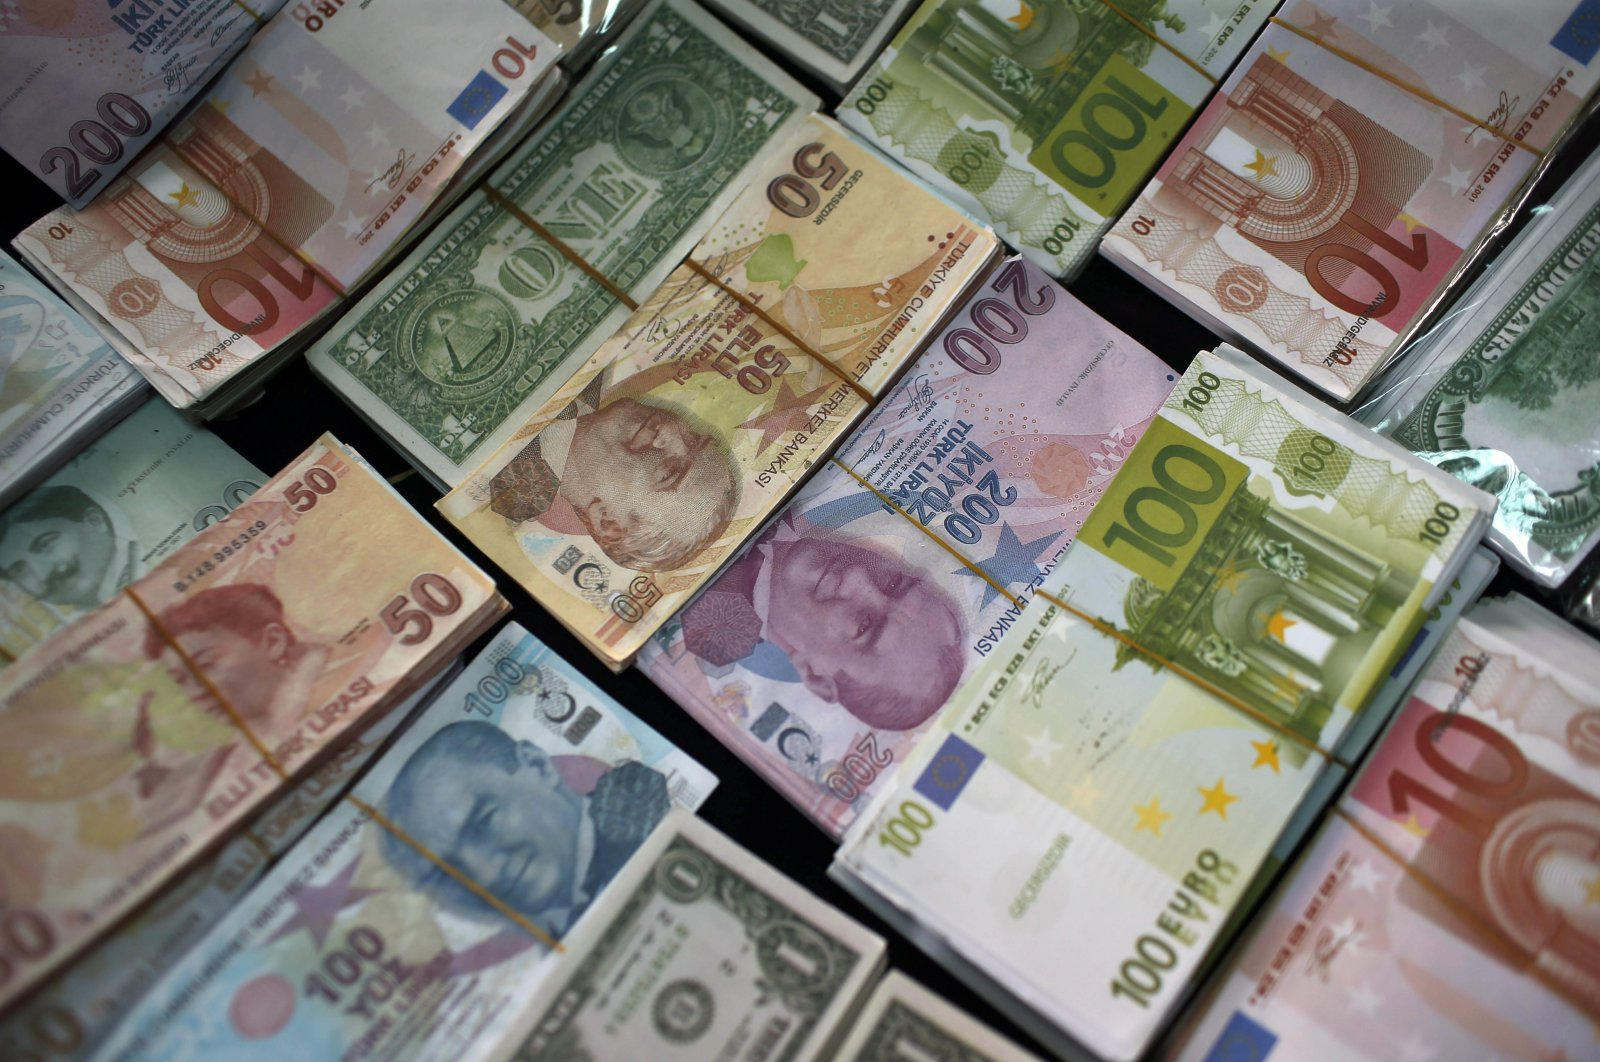 Turkish liras, euros and U.S. dollars are stacked at a currency exchange office in Istanbul, Turkey.  June 8, 2015. (AP Photo)